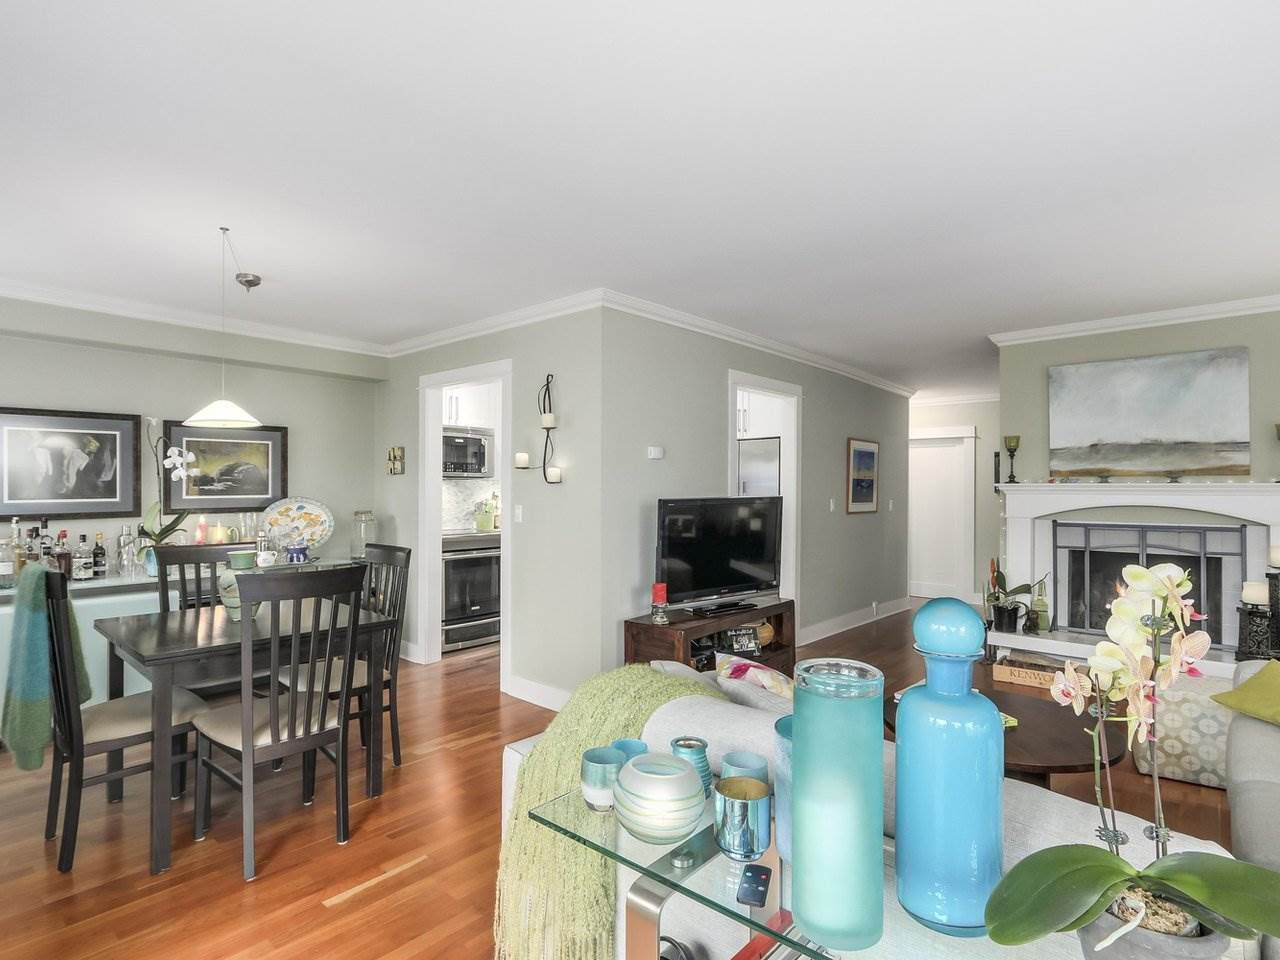 Main Photo: 102 1266 W 13TH AVENUE in Vancouver: Fairview VW Condo for sale (Vancouver West)  : MLS®# R2245170